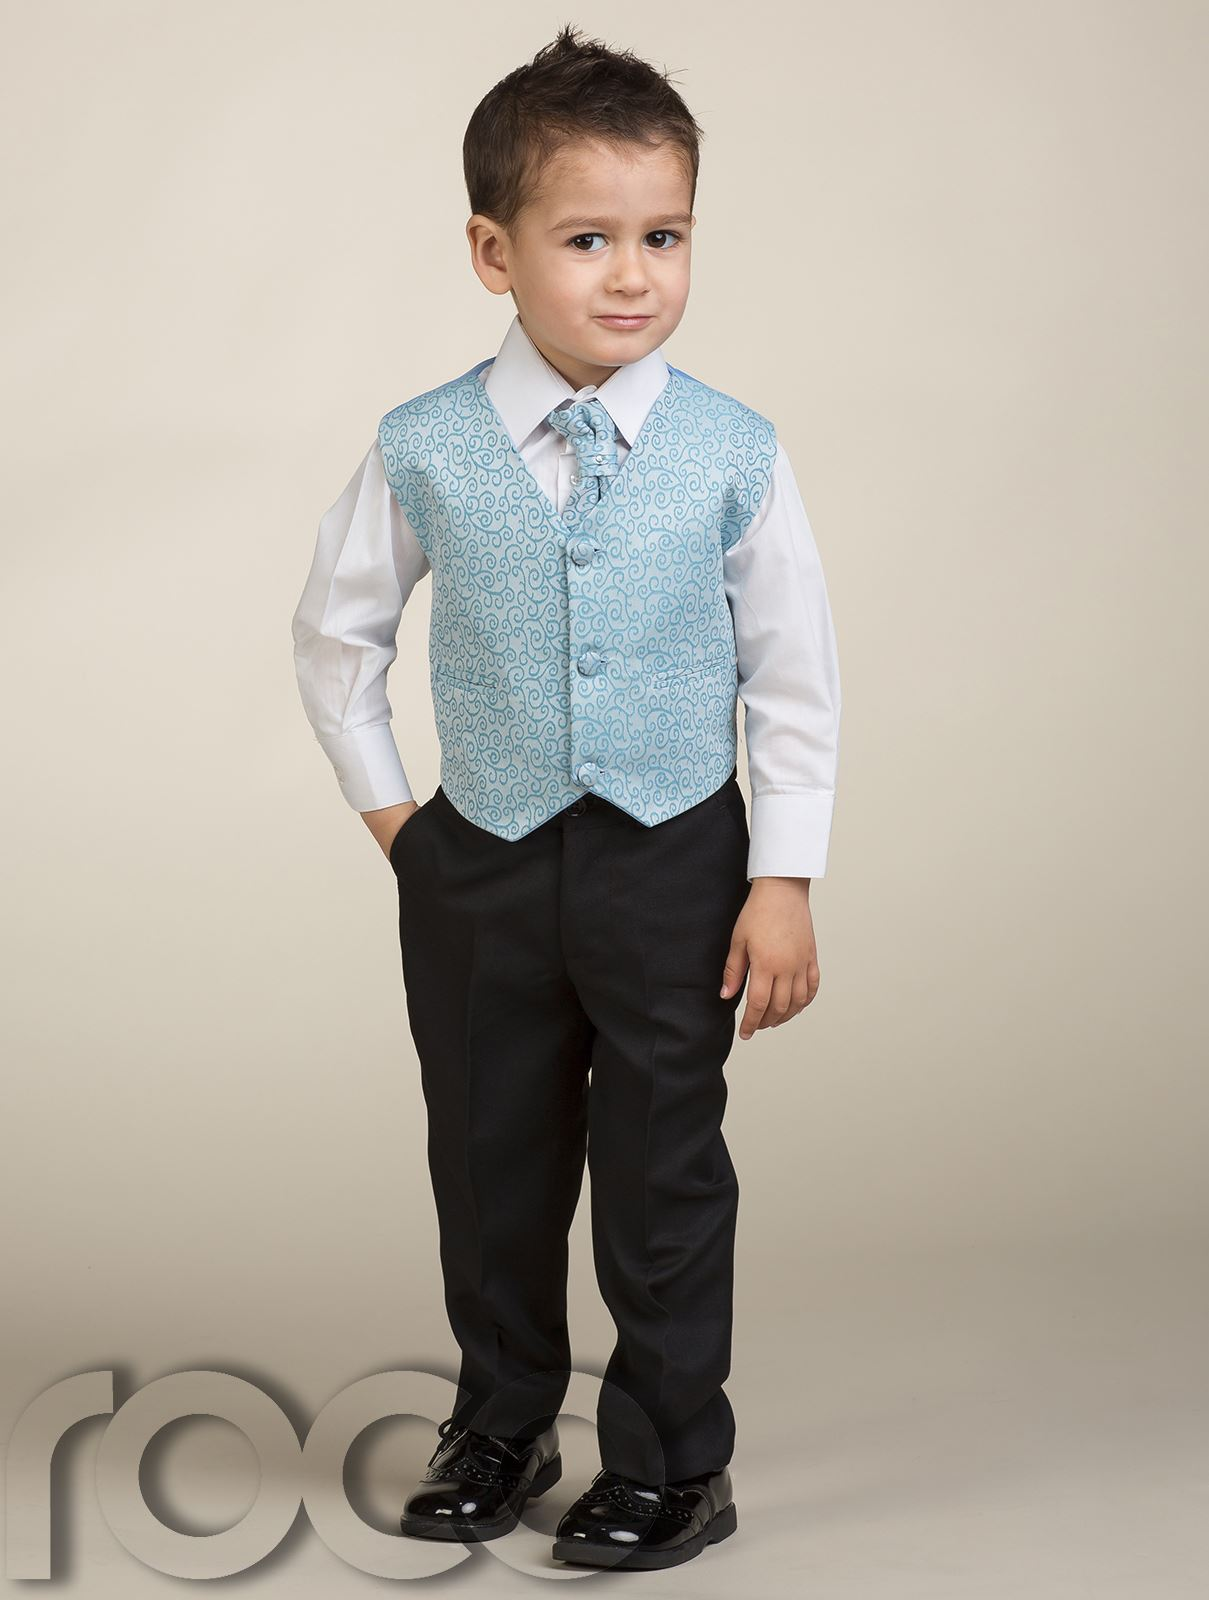 Boys Waistcoat Suit, Page Boy Suits, Prom Suits, Boys Wedding Suit ...